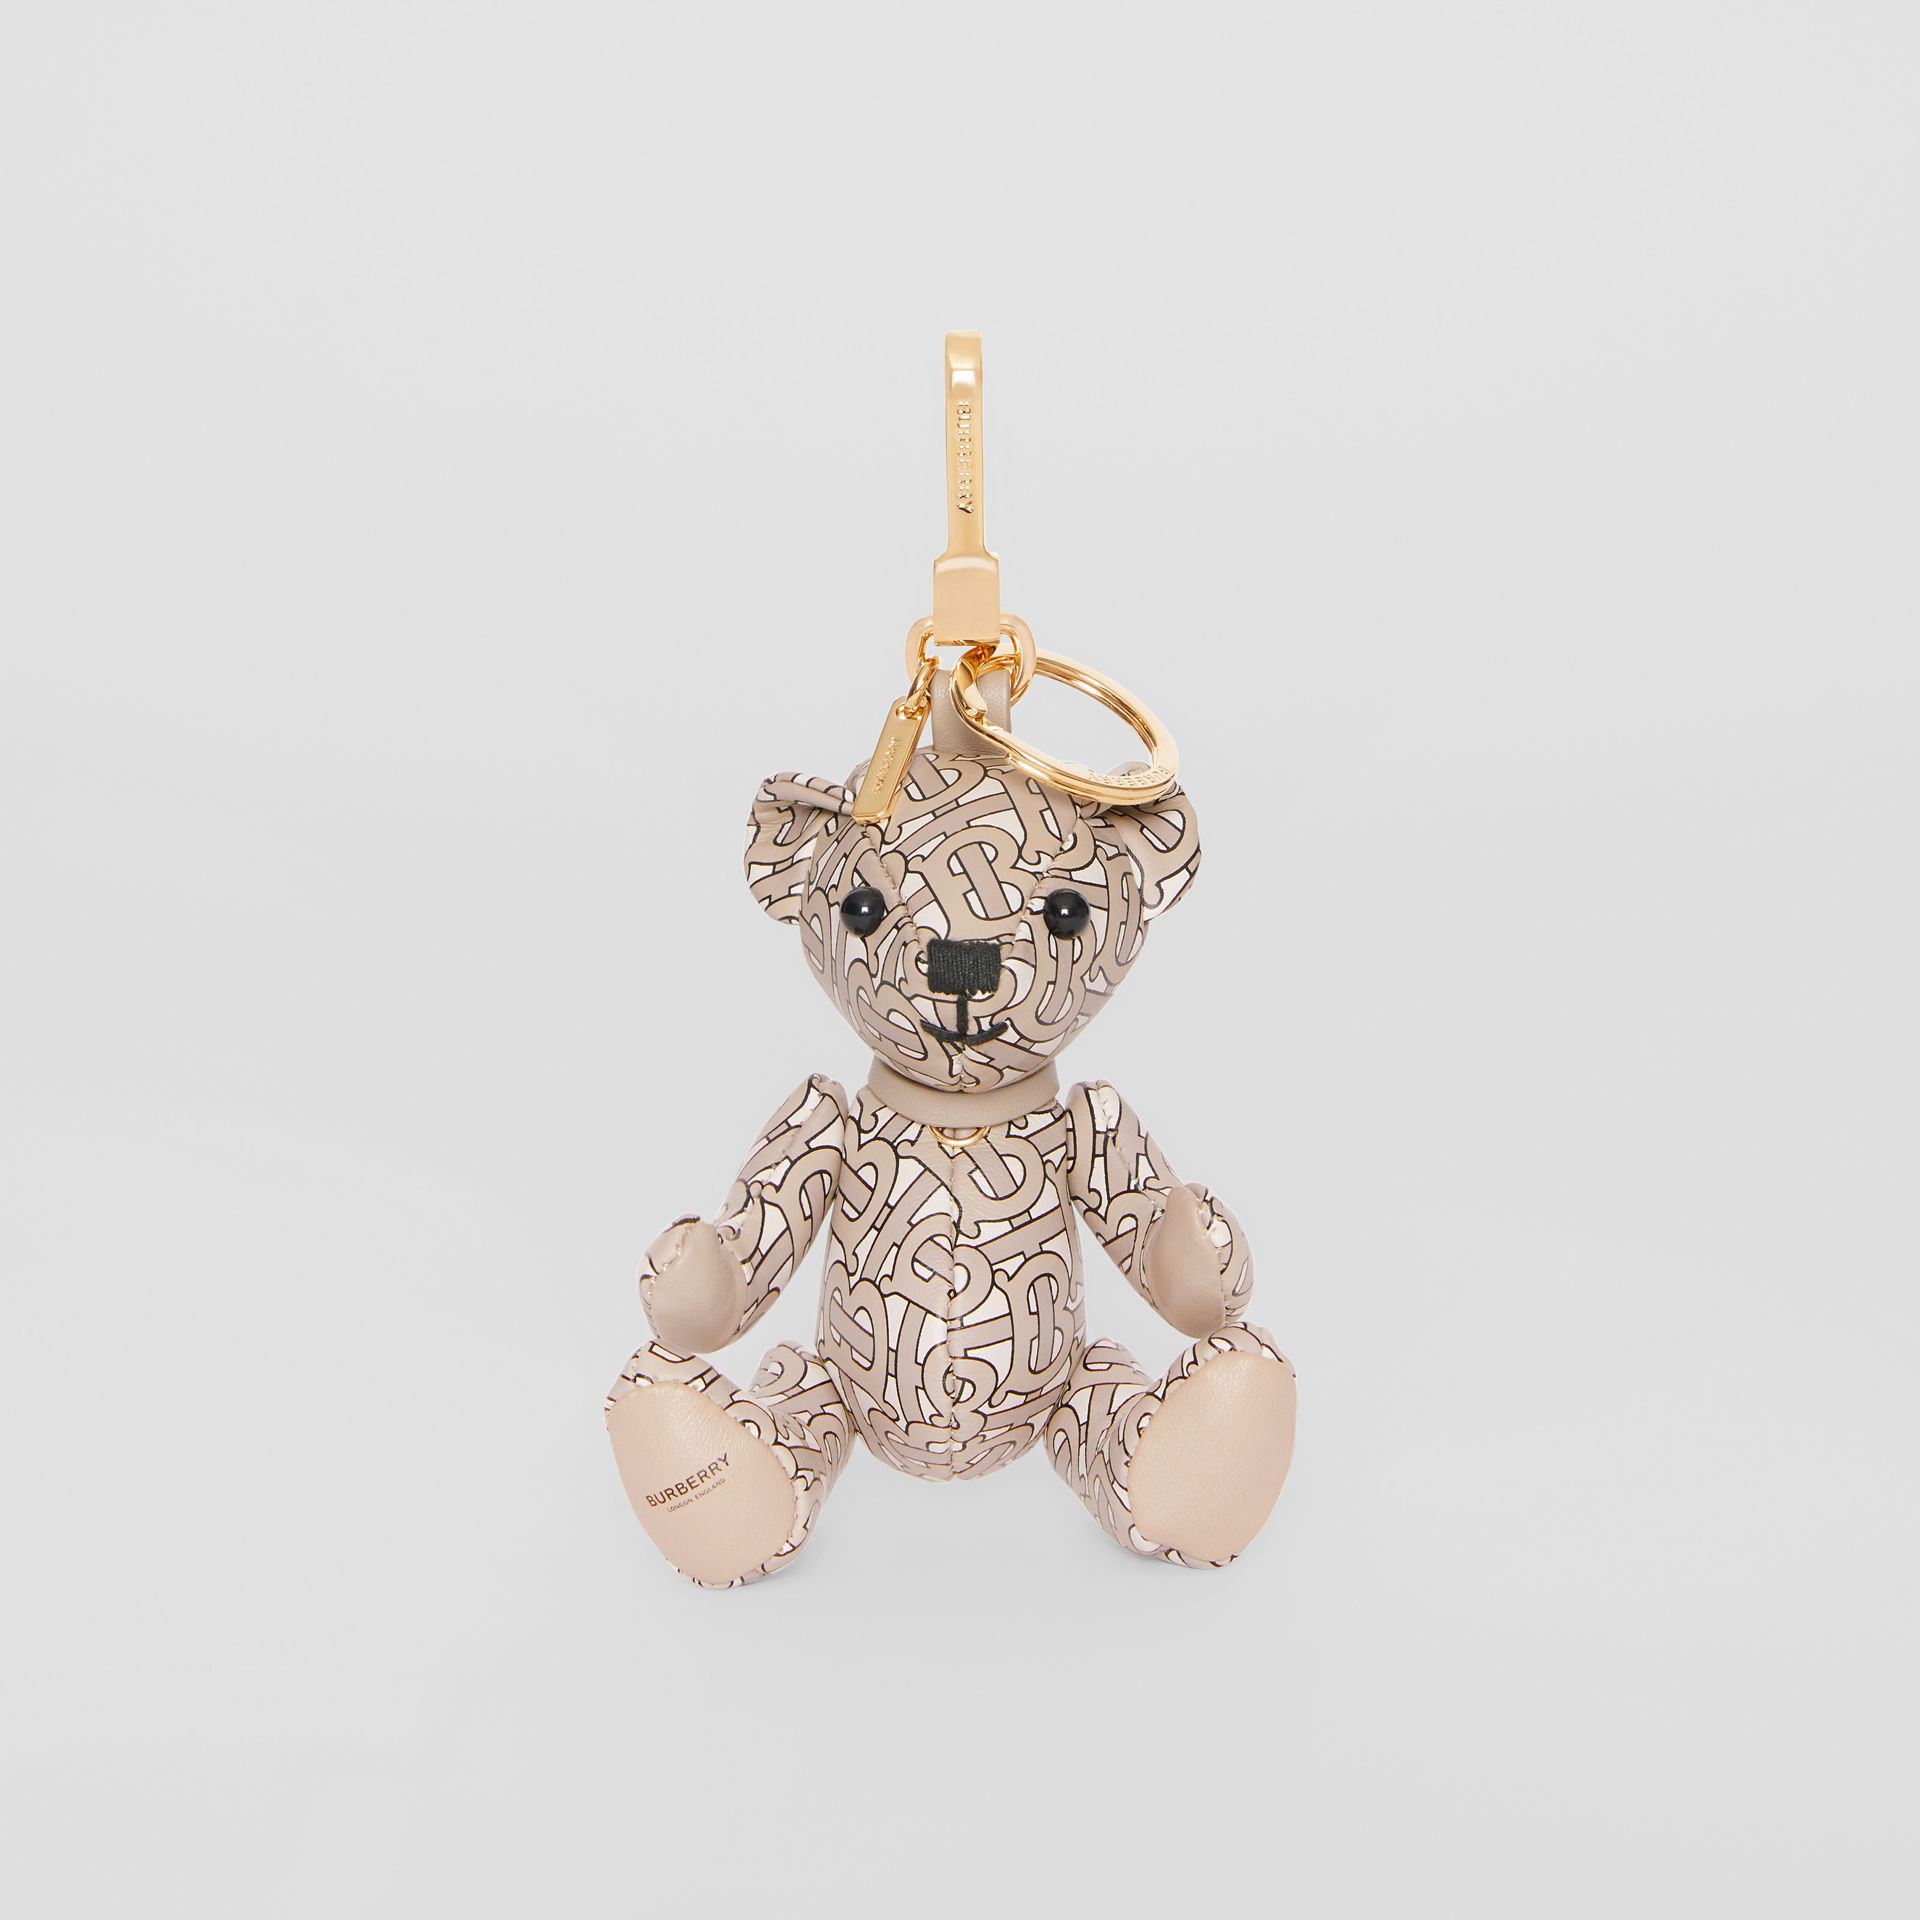 Thomas Bear Charm in Monogram Print Leather in Beige - Women | Burberry - gallery image 2